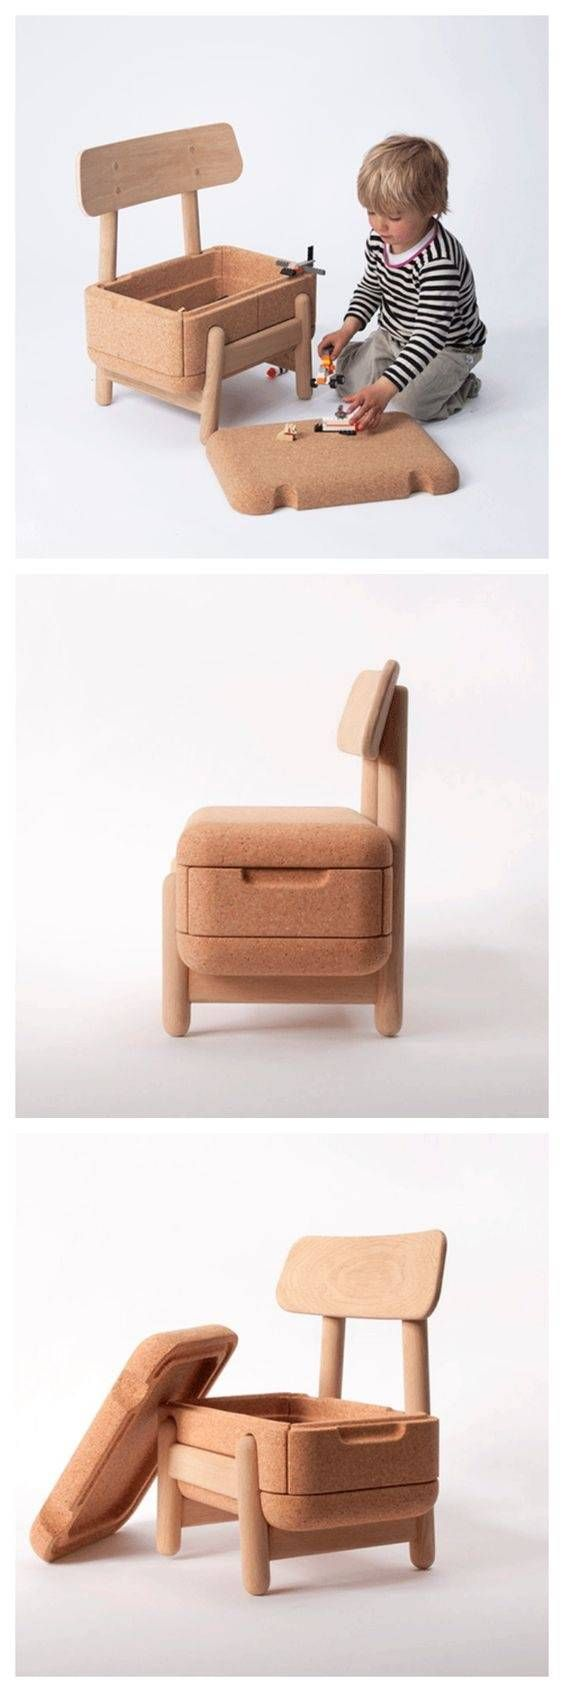 best uchairuobju images on pinterest chairs chair design and